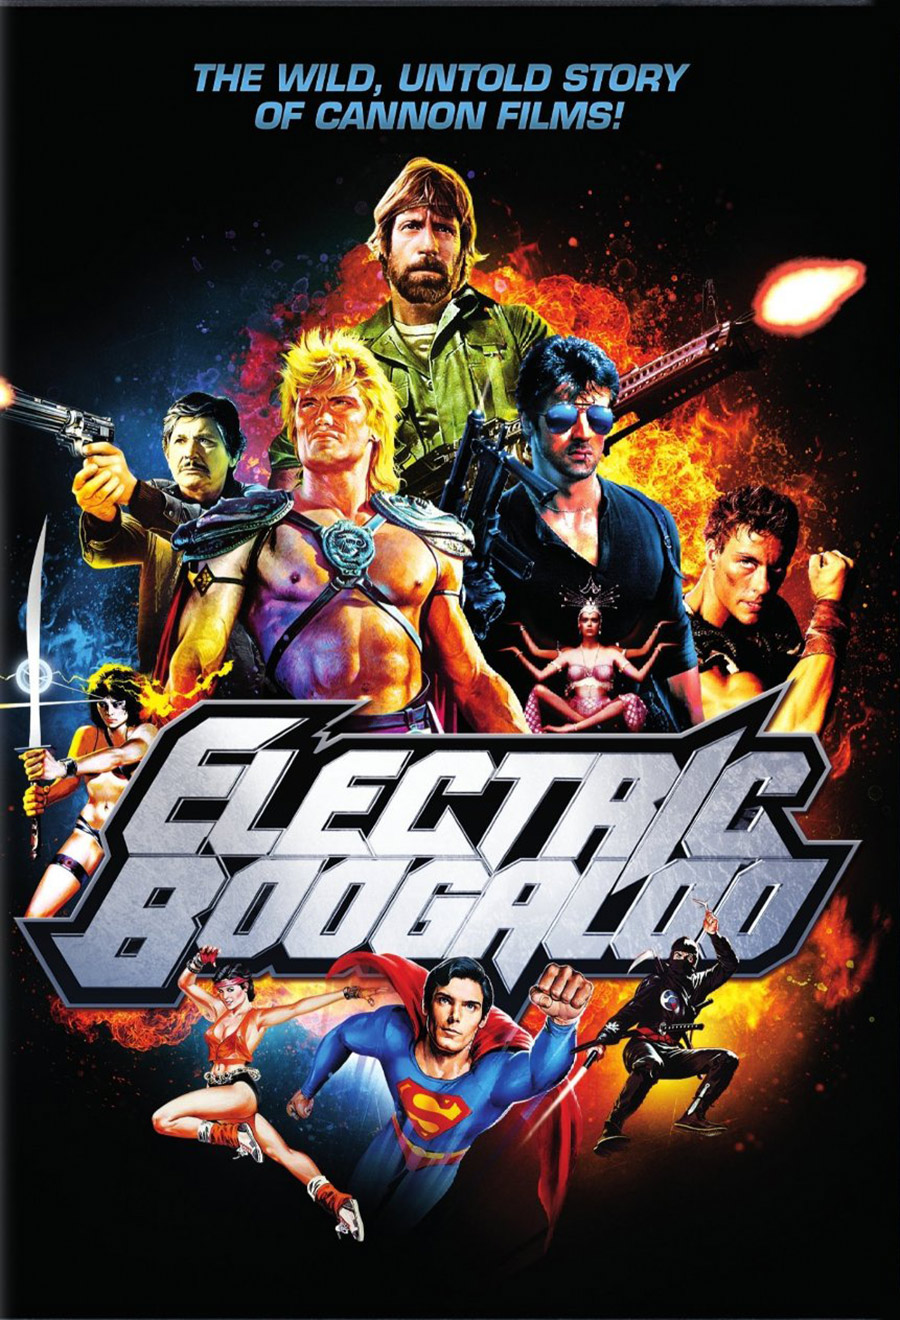 electric-boogaloo-forgotten-story-of-cannon-films-dvd-bluray-images-a